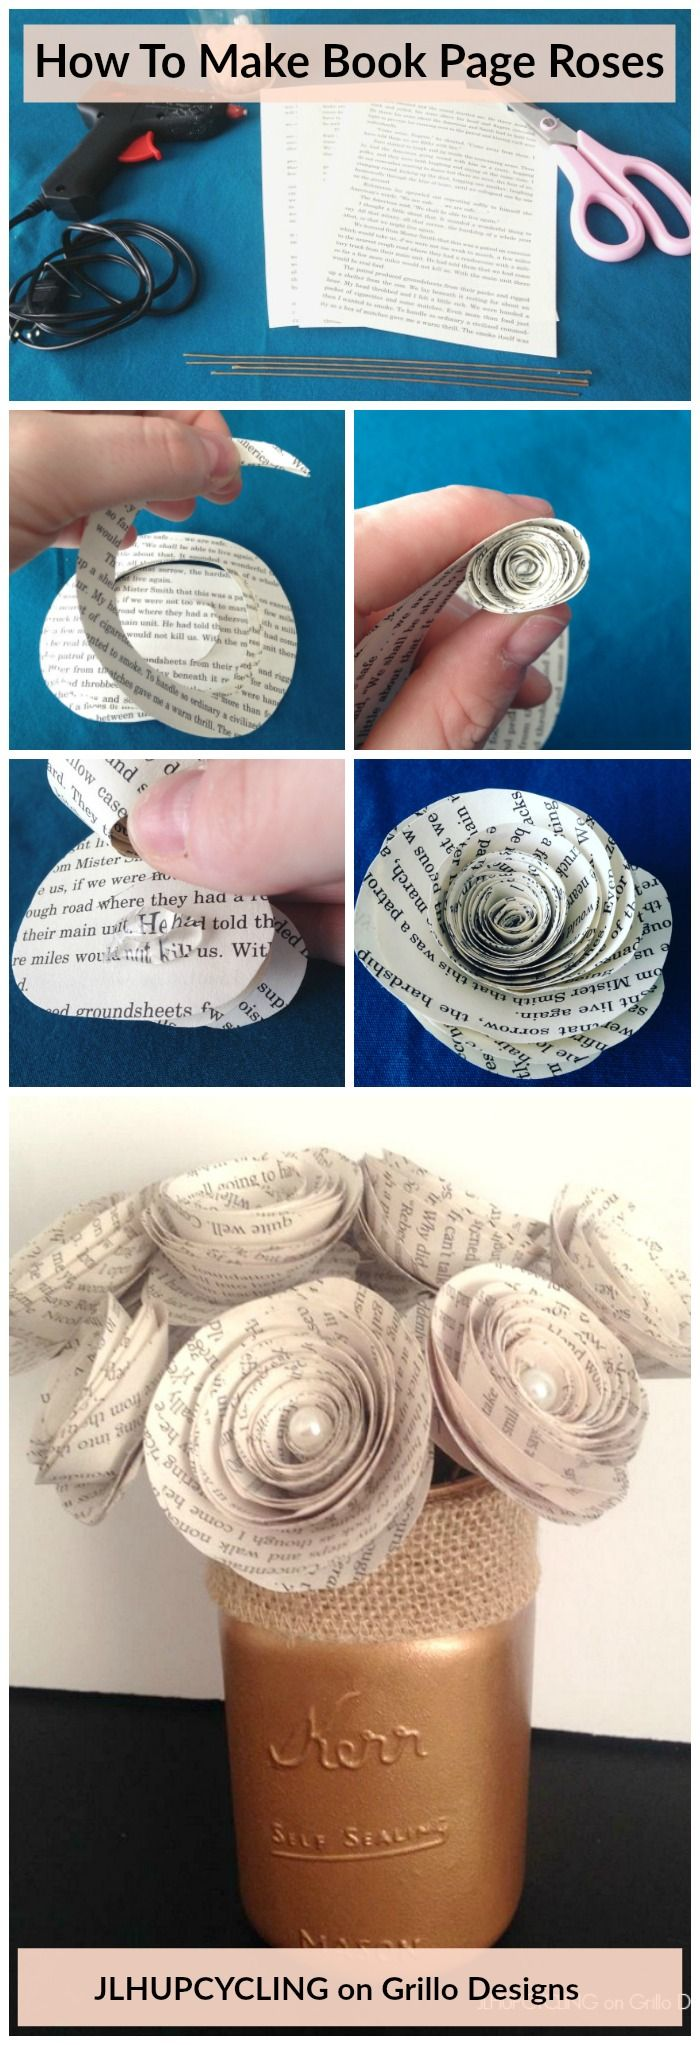 Jen Holz from JLHUPCYCLING shares how to create gorgeous looking roses from book pages! Simple, easy and quick to do. See full tutorial here